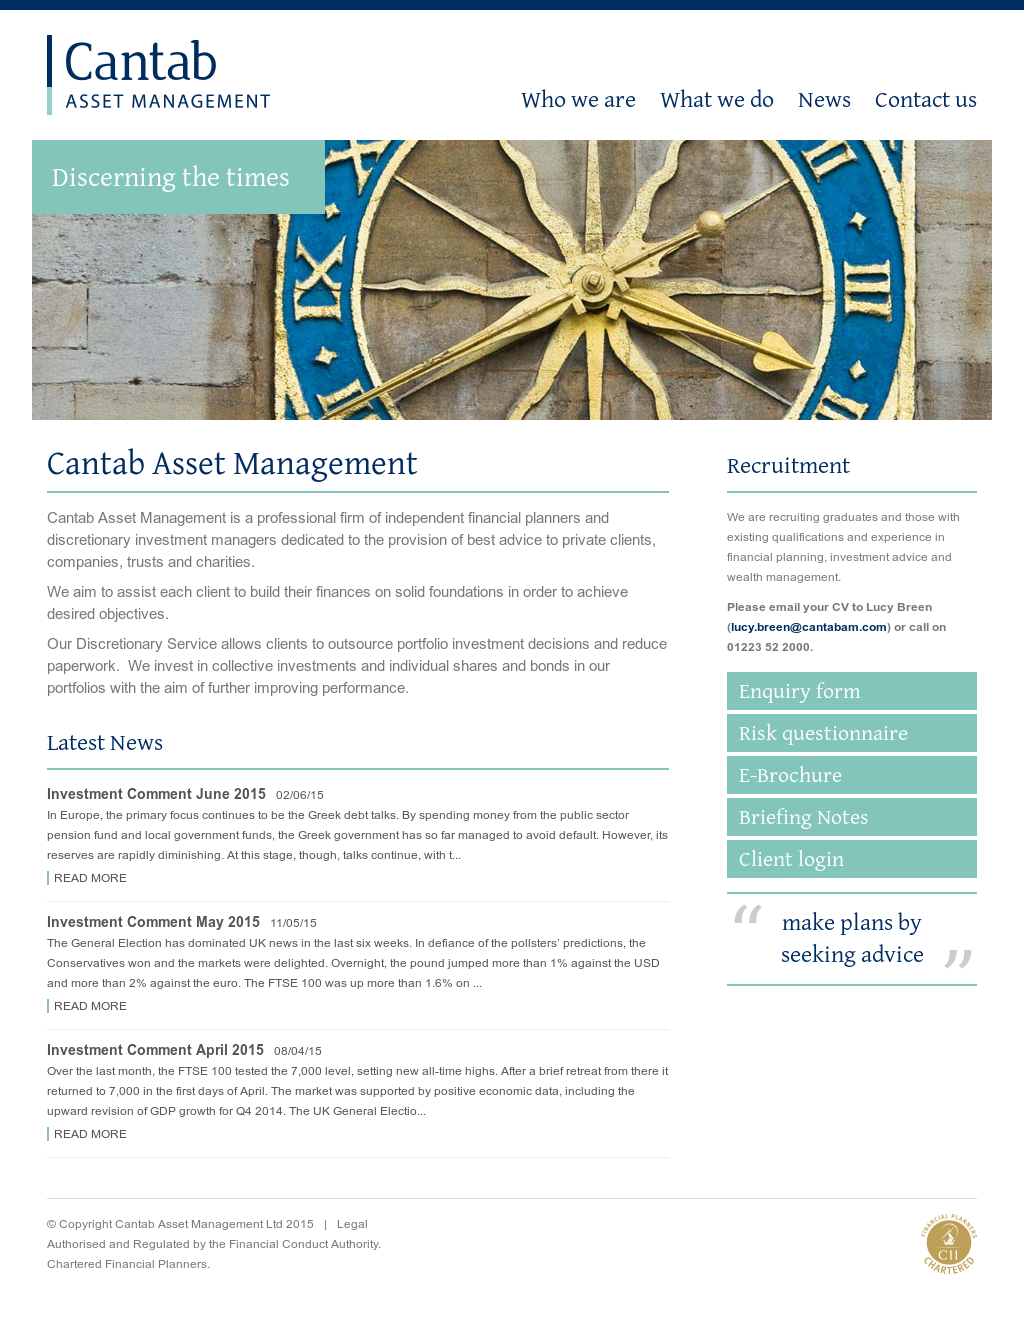 Cantab Asset Management Competitors, Revenue and Employees